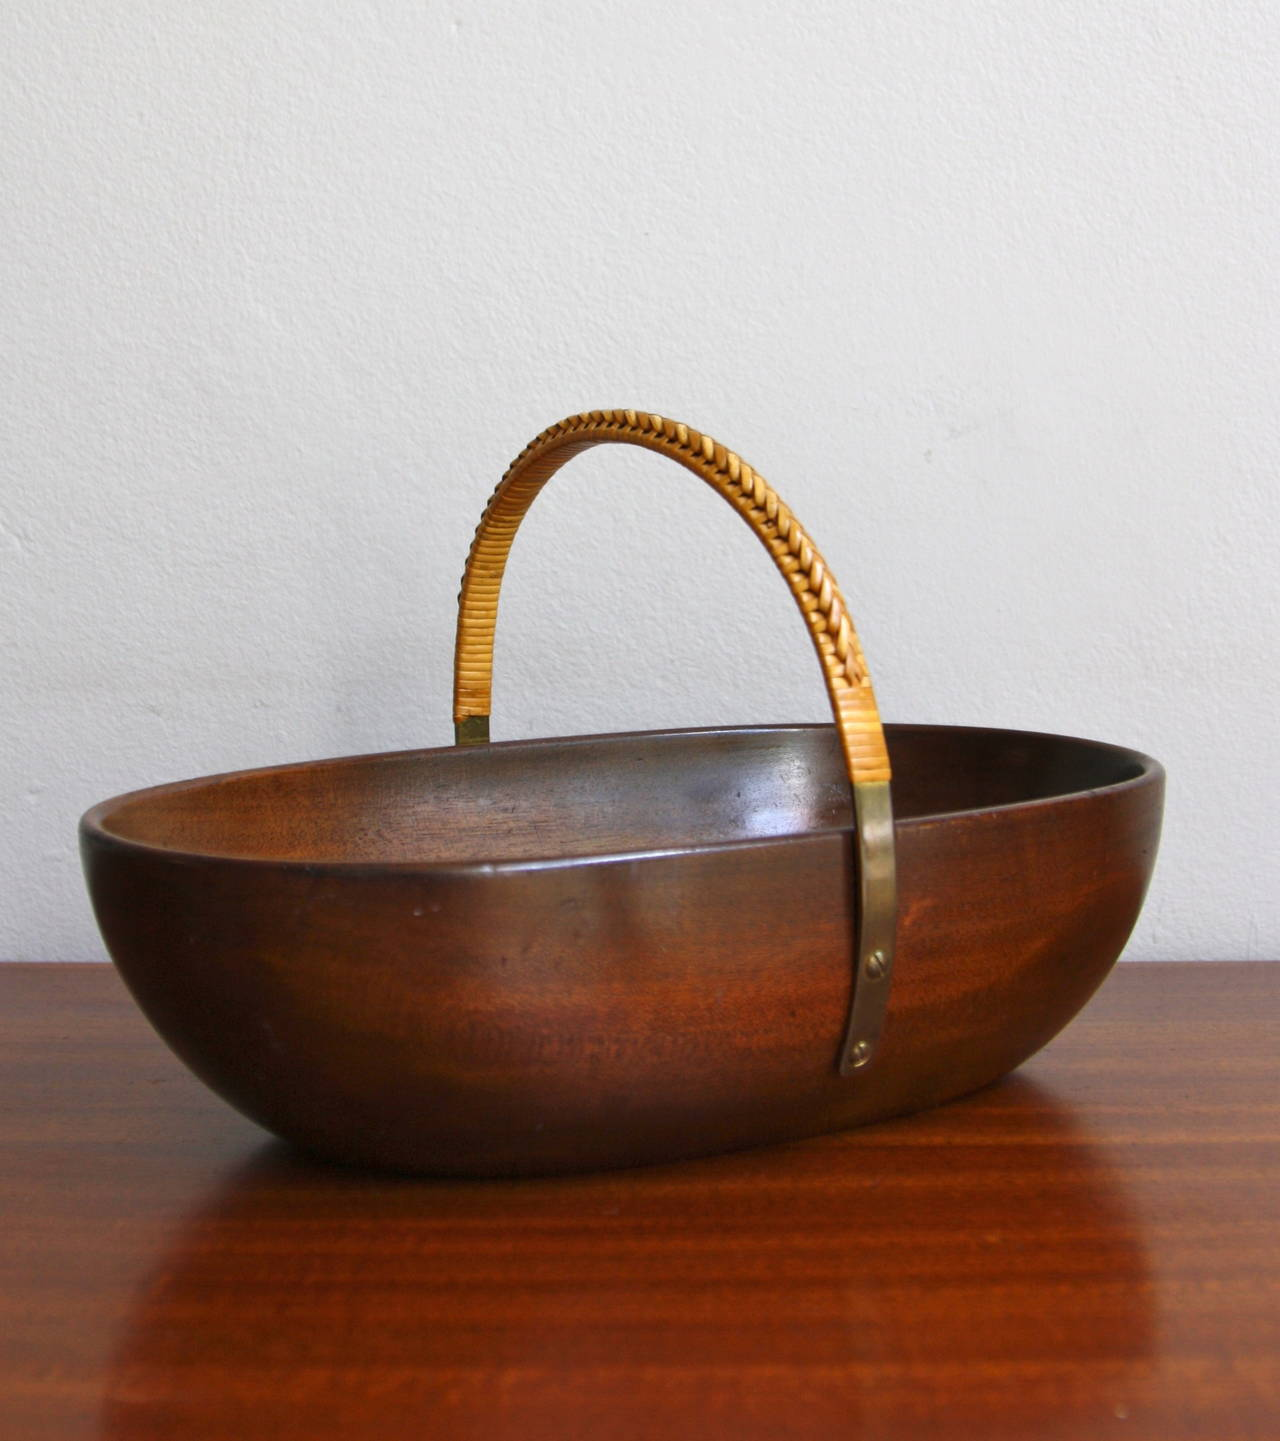 Wicker Bowl Chair Carl Auböck Large Bowl With Brass And Wicker Handle At 1stdibs